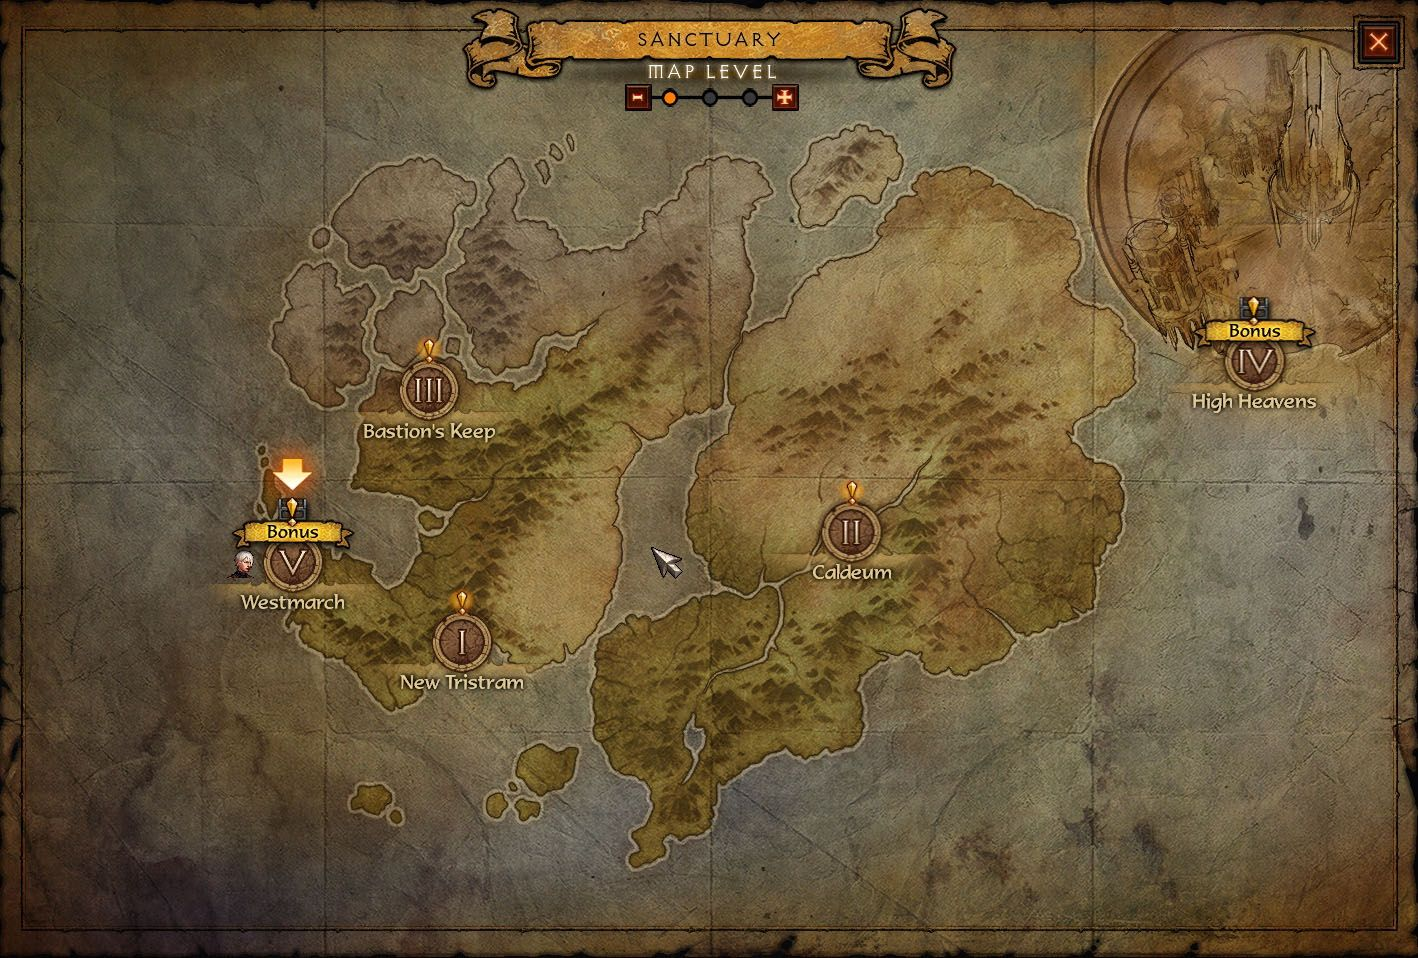 Towns too hard to see on new diablo 3 waypoint map fans suggest towns too hard to see on new diablo 3 waypoint map fans suggest easier visuals gumiabroncs Gallery